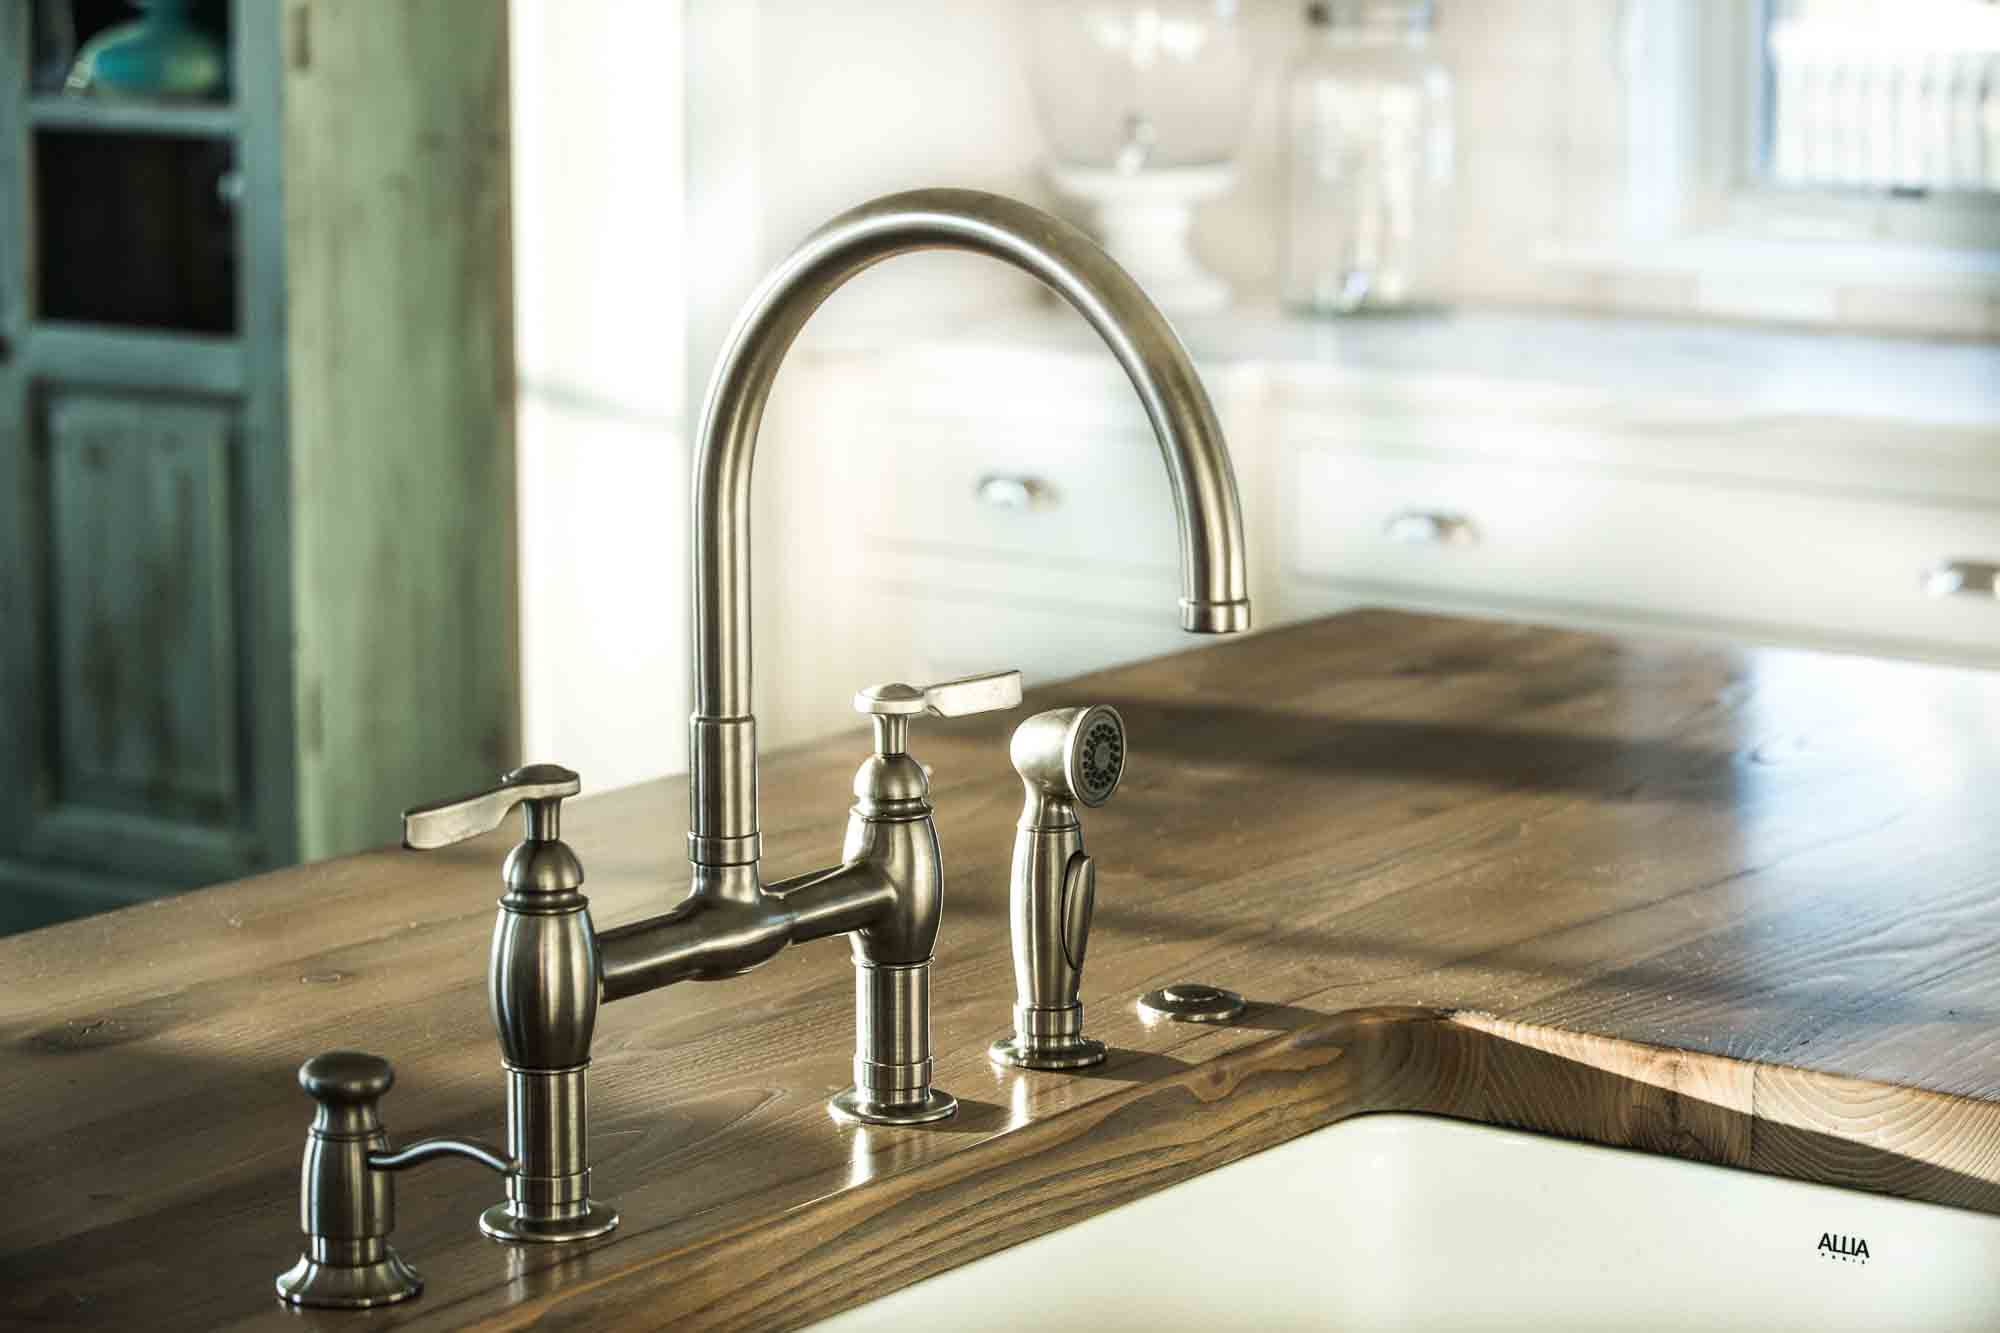 Reclaimed Countertop design by Blue Bell Kitchens